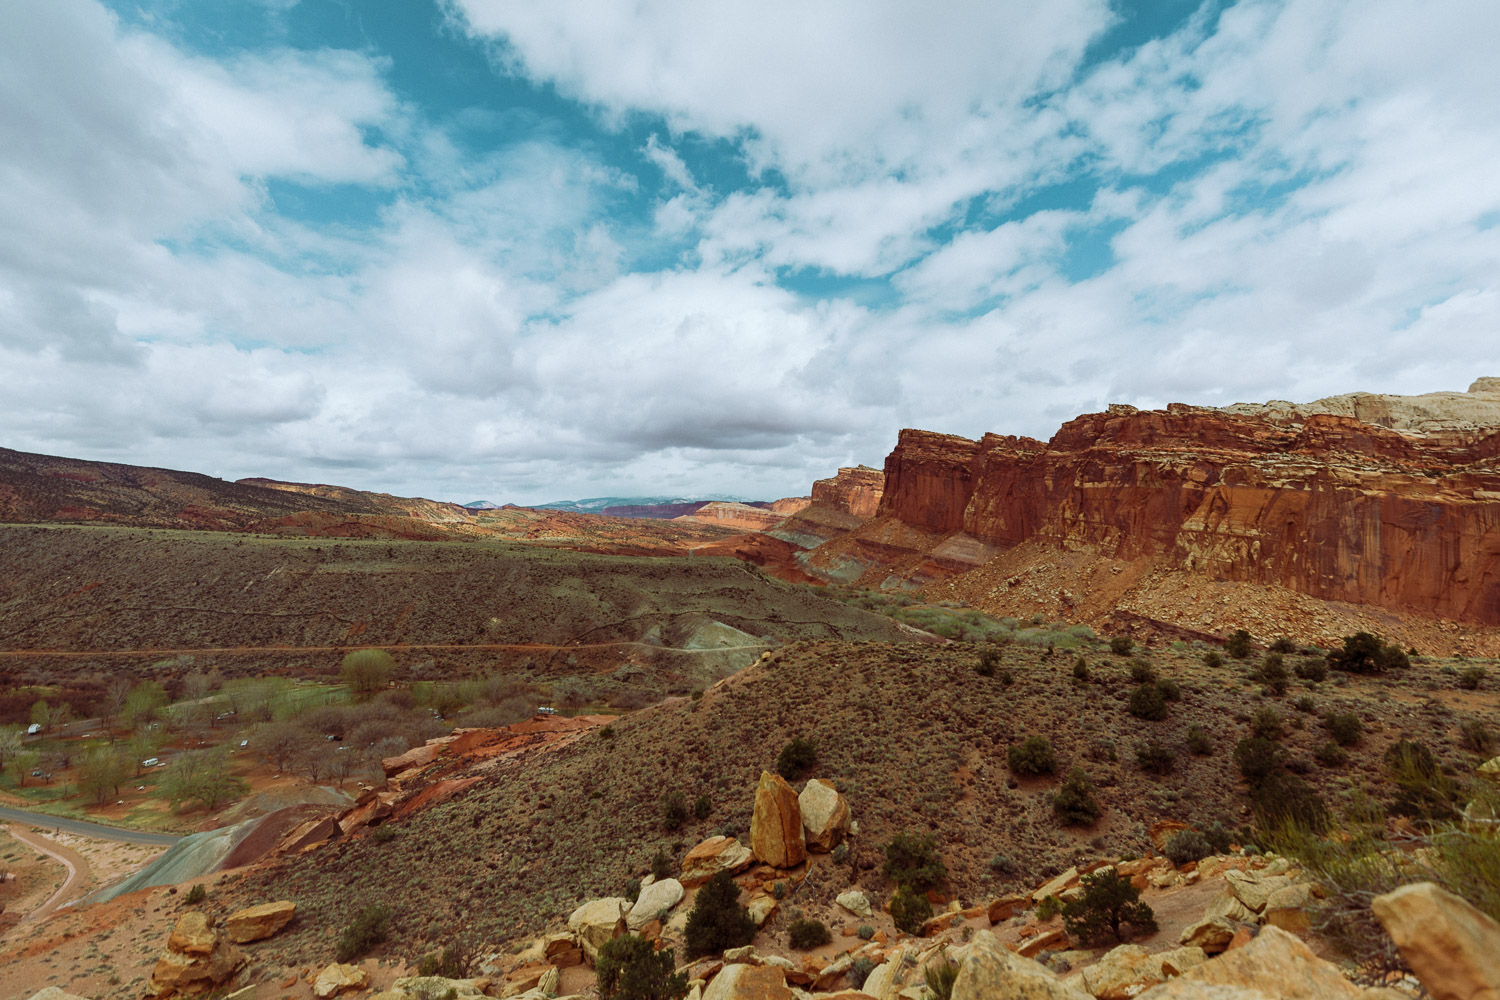 Rachel Off Duty: The View of Canyonlands National Park